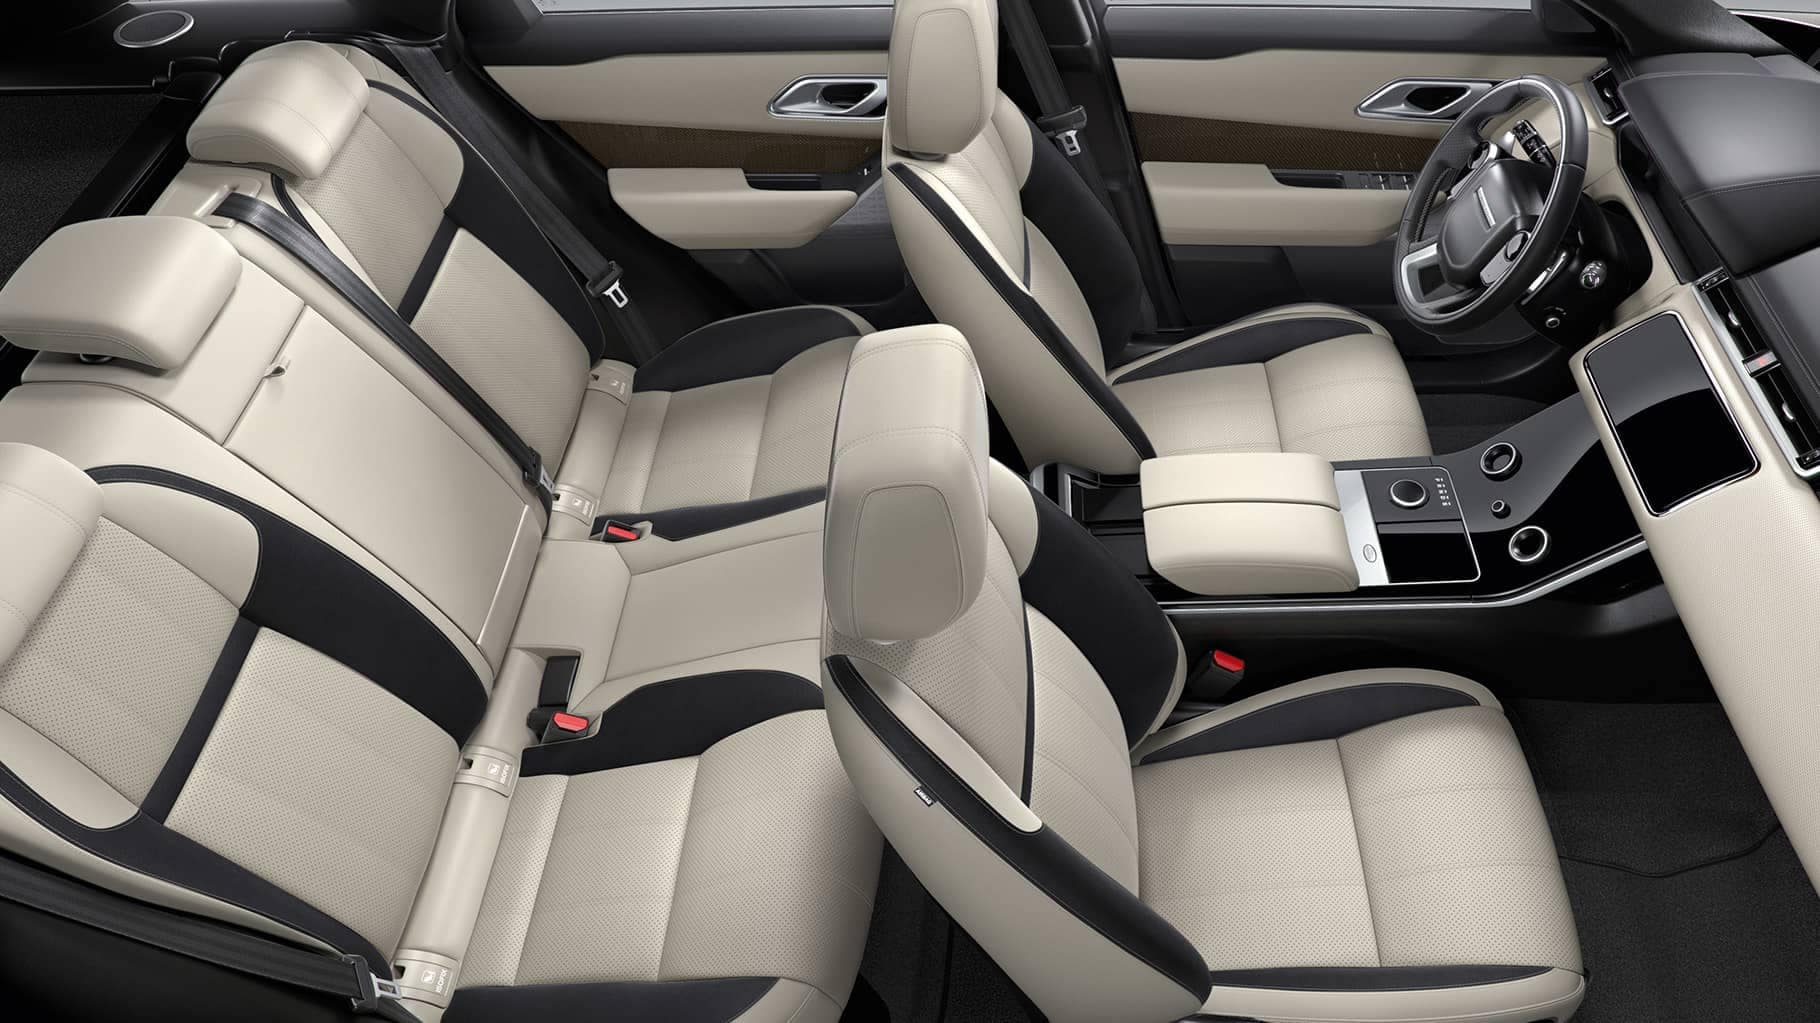 2019-Land-Rover-Range-Rover-Velar-Seating